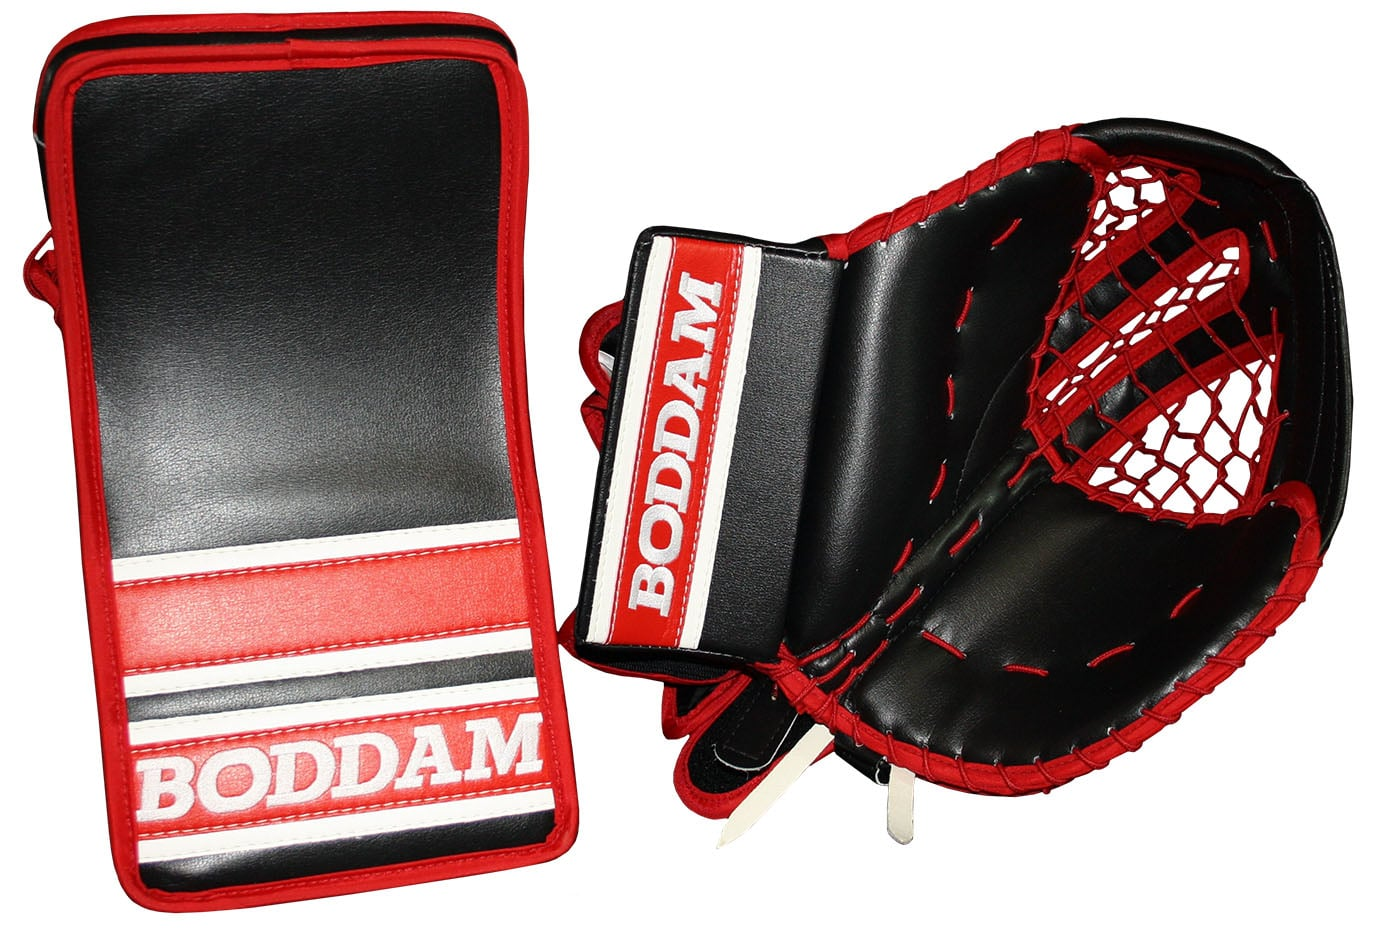 Boddam custom hockey glove and blocker